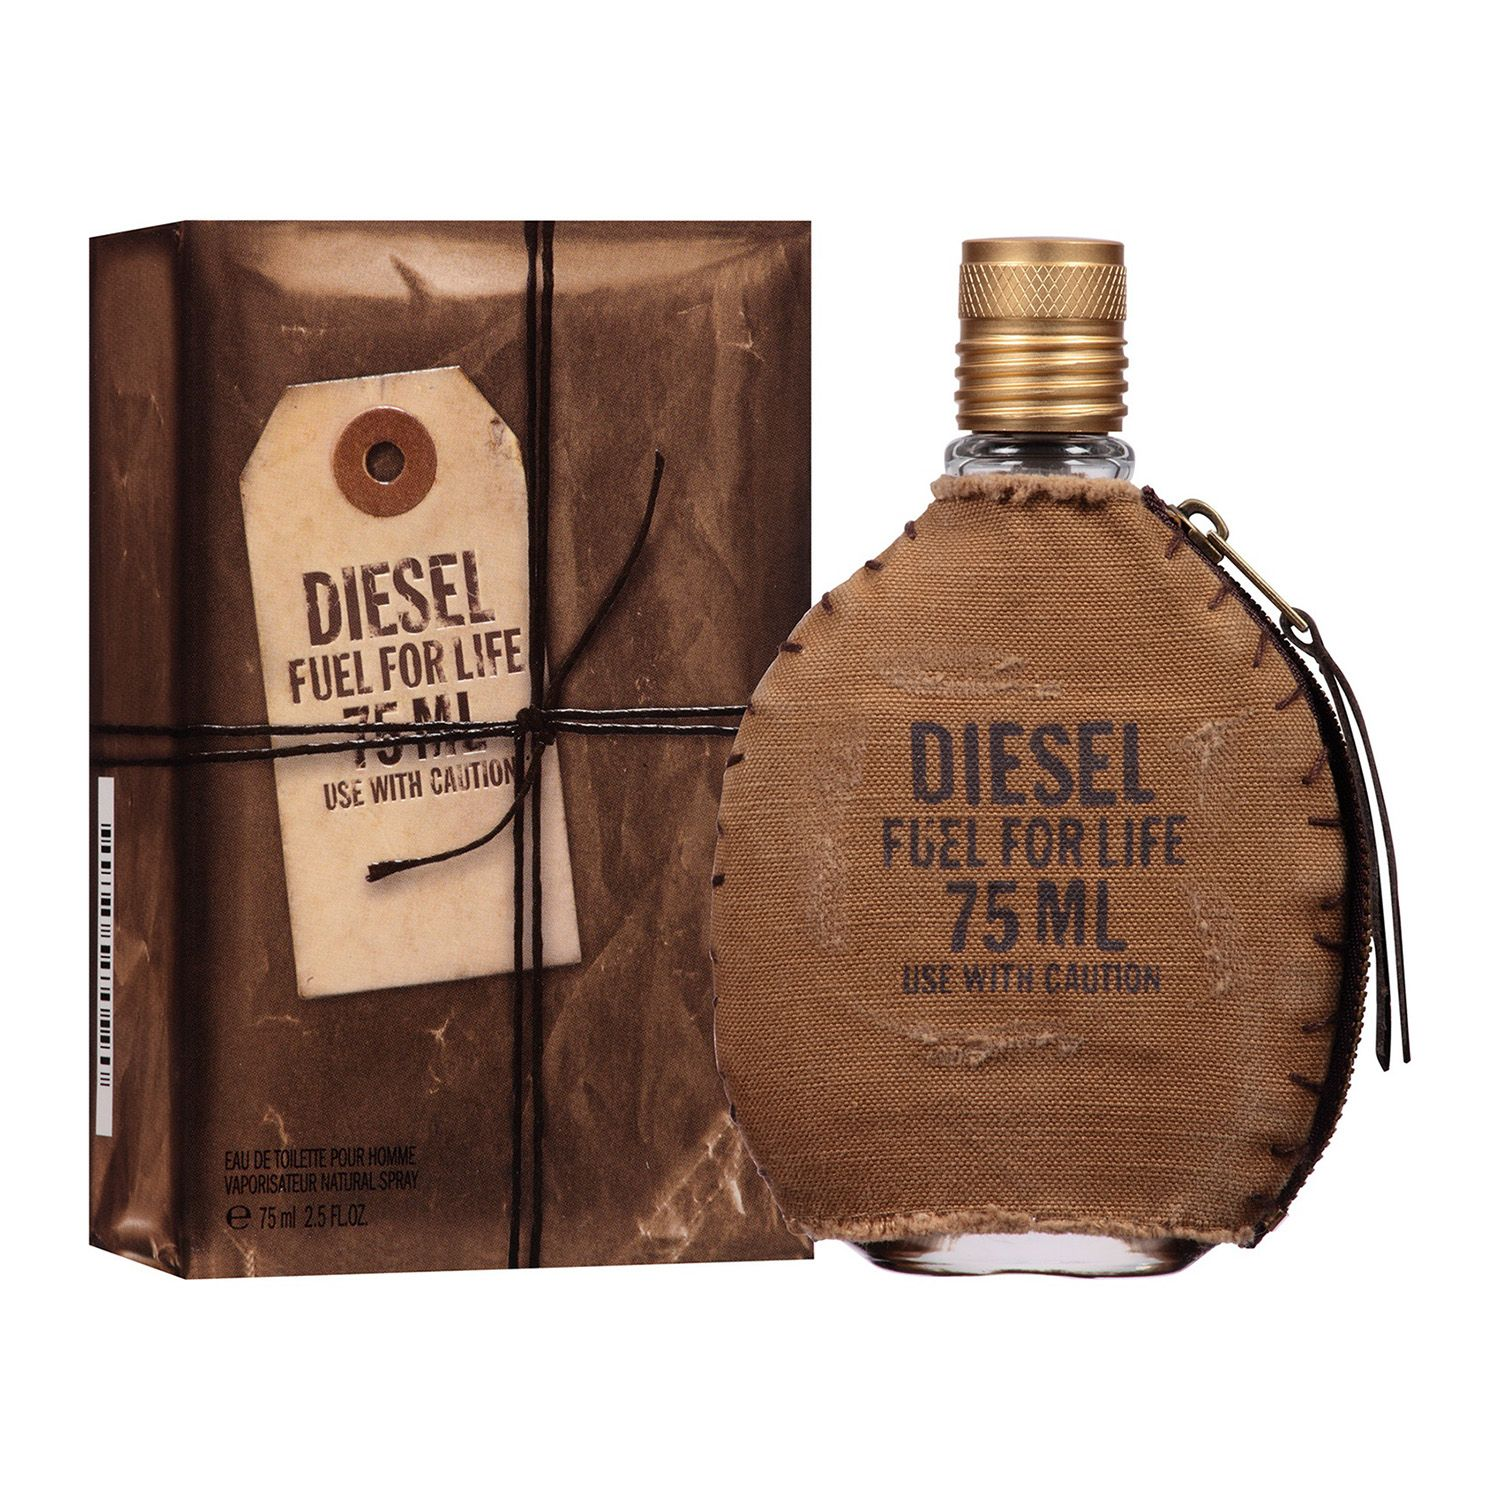 Diesel Fuel for Life (2.5 oz.)